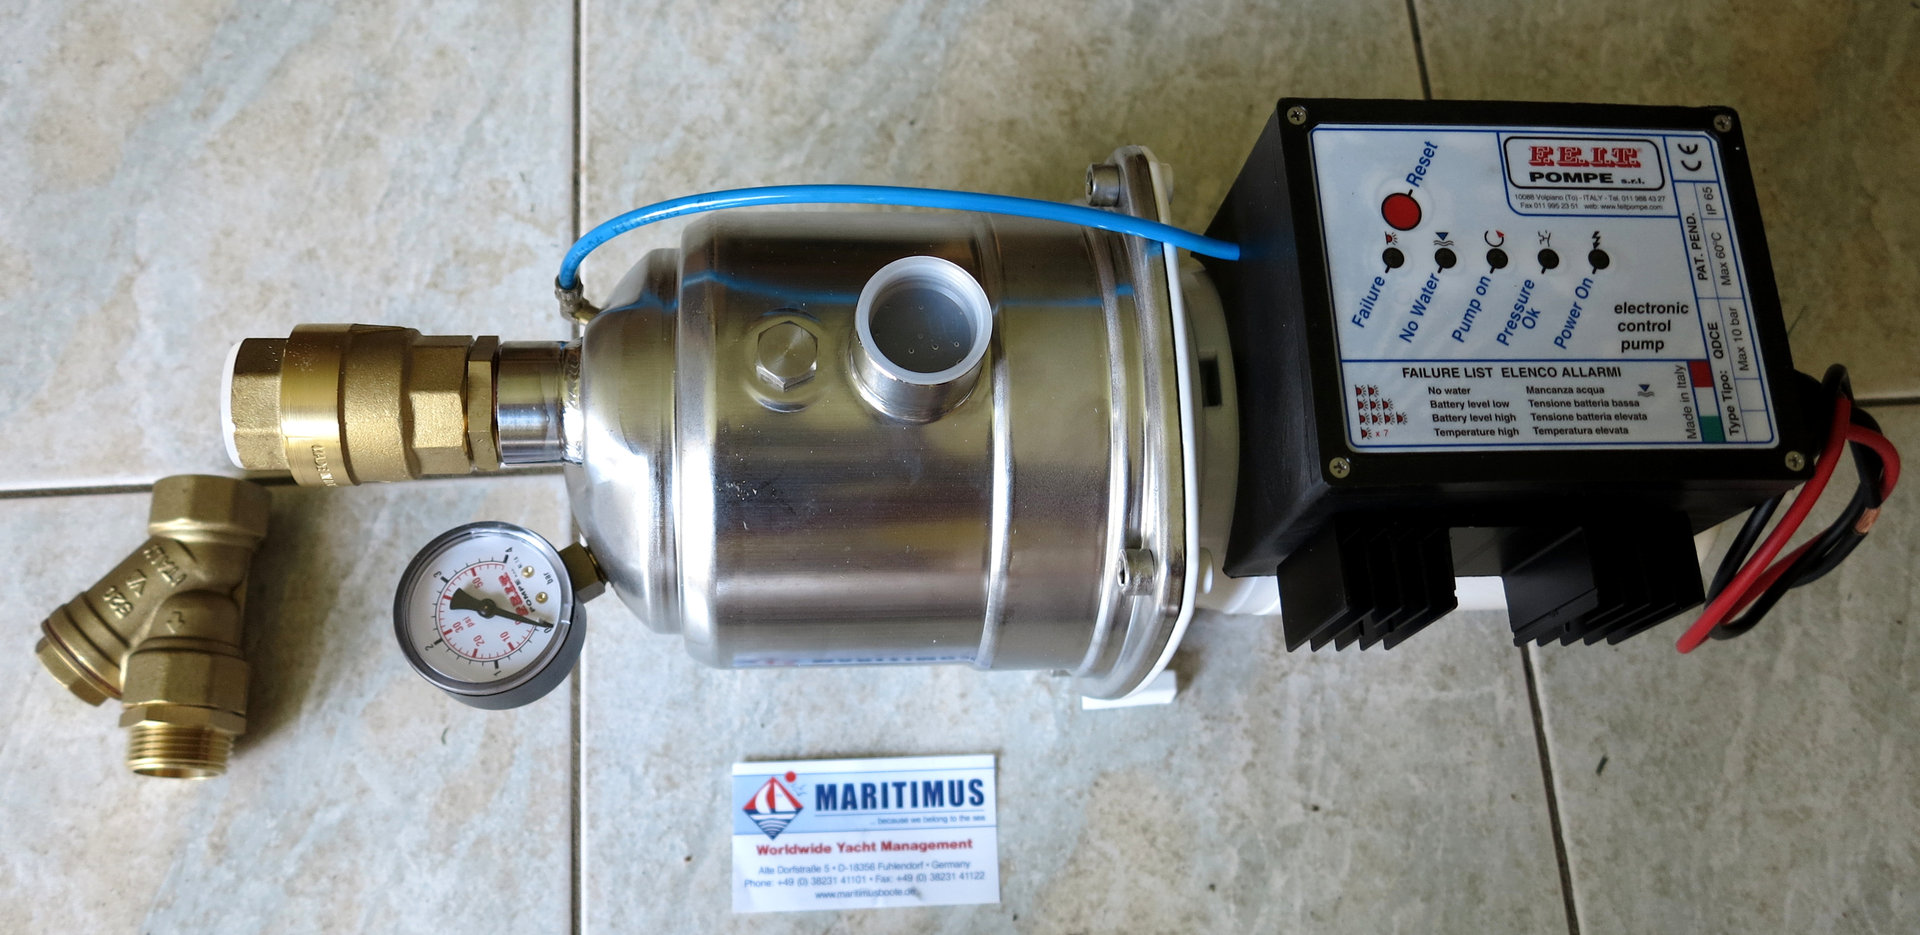 F E I T  Pompe, - WATER CONTROL System WPS AM992I QDCE, 24V